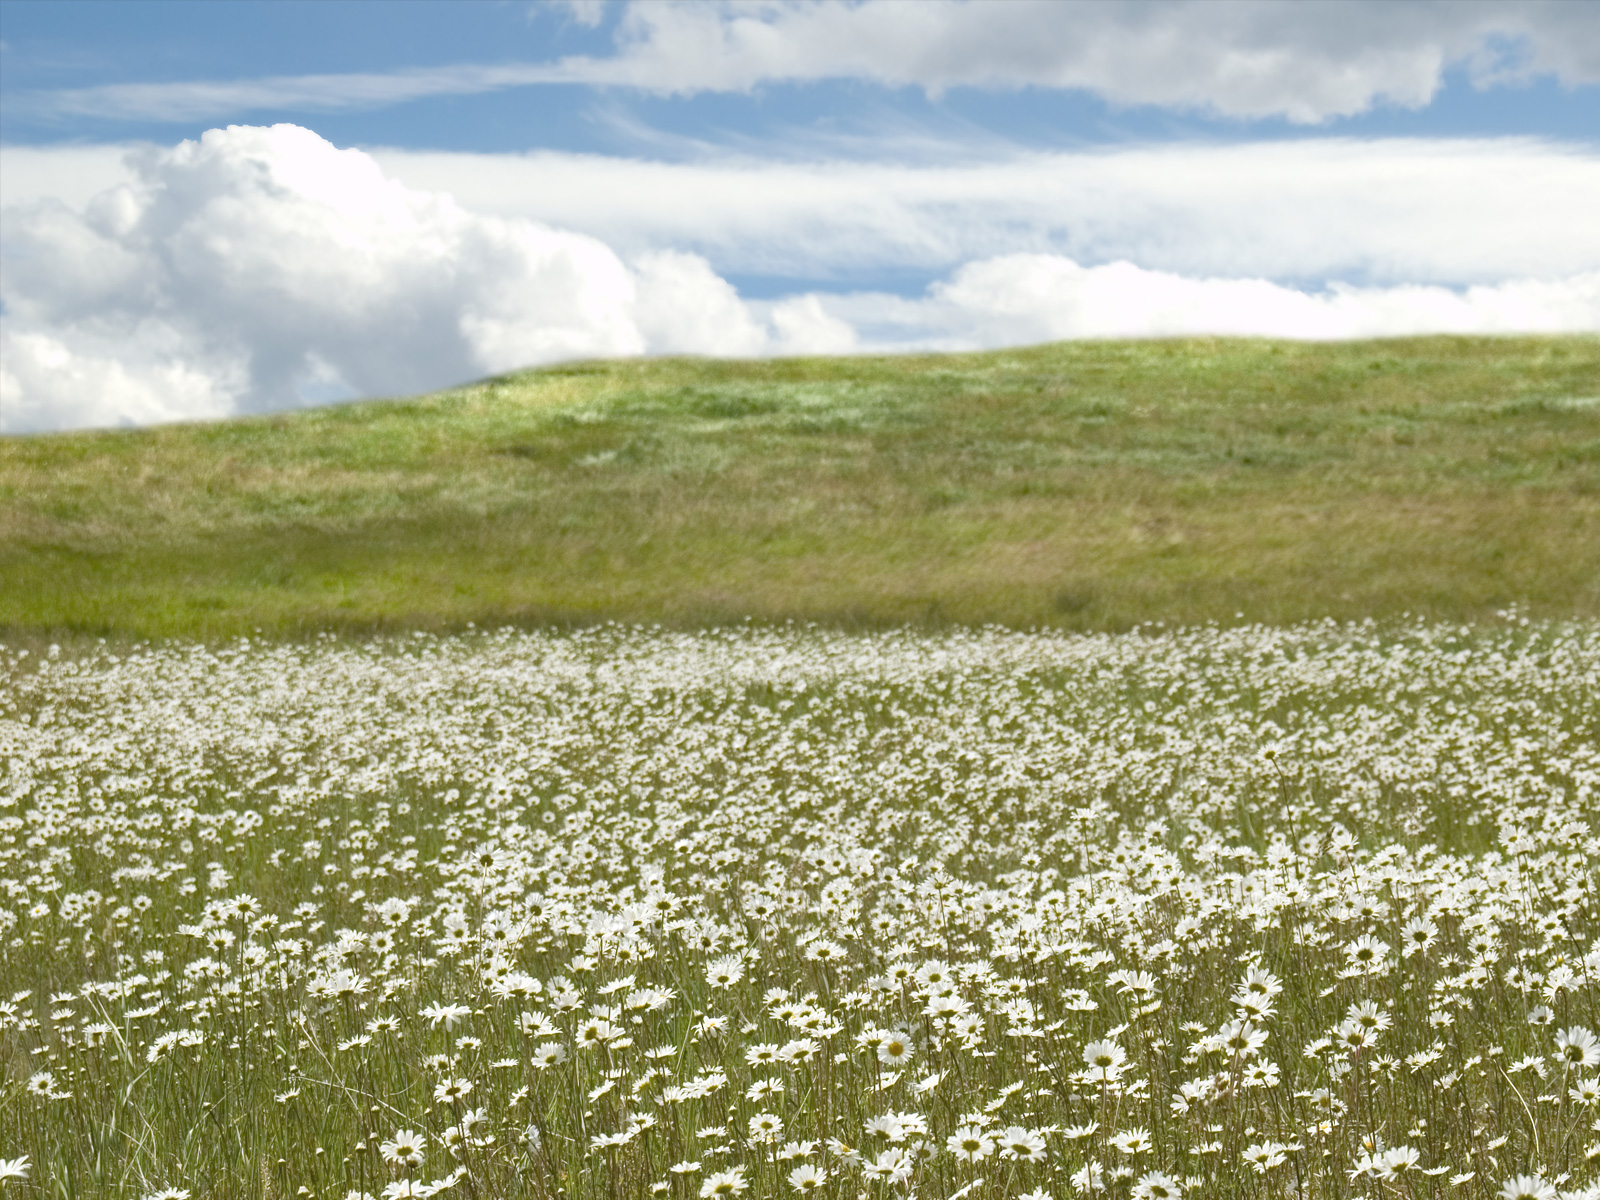 http://4.bp.blogspot.com/-S-mP-hj6O2Q/TdeoCbWPSgI/AAAAAAAADfY/pdsi5eZoSjA/s1600/Mountain_Meadow_Wallpaper_by_Deadelius.jpg